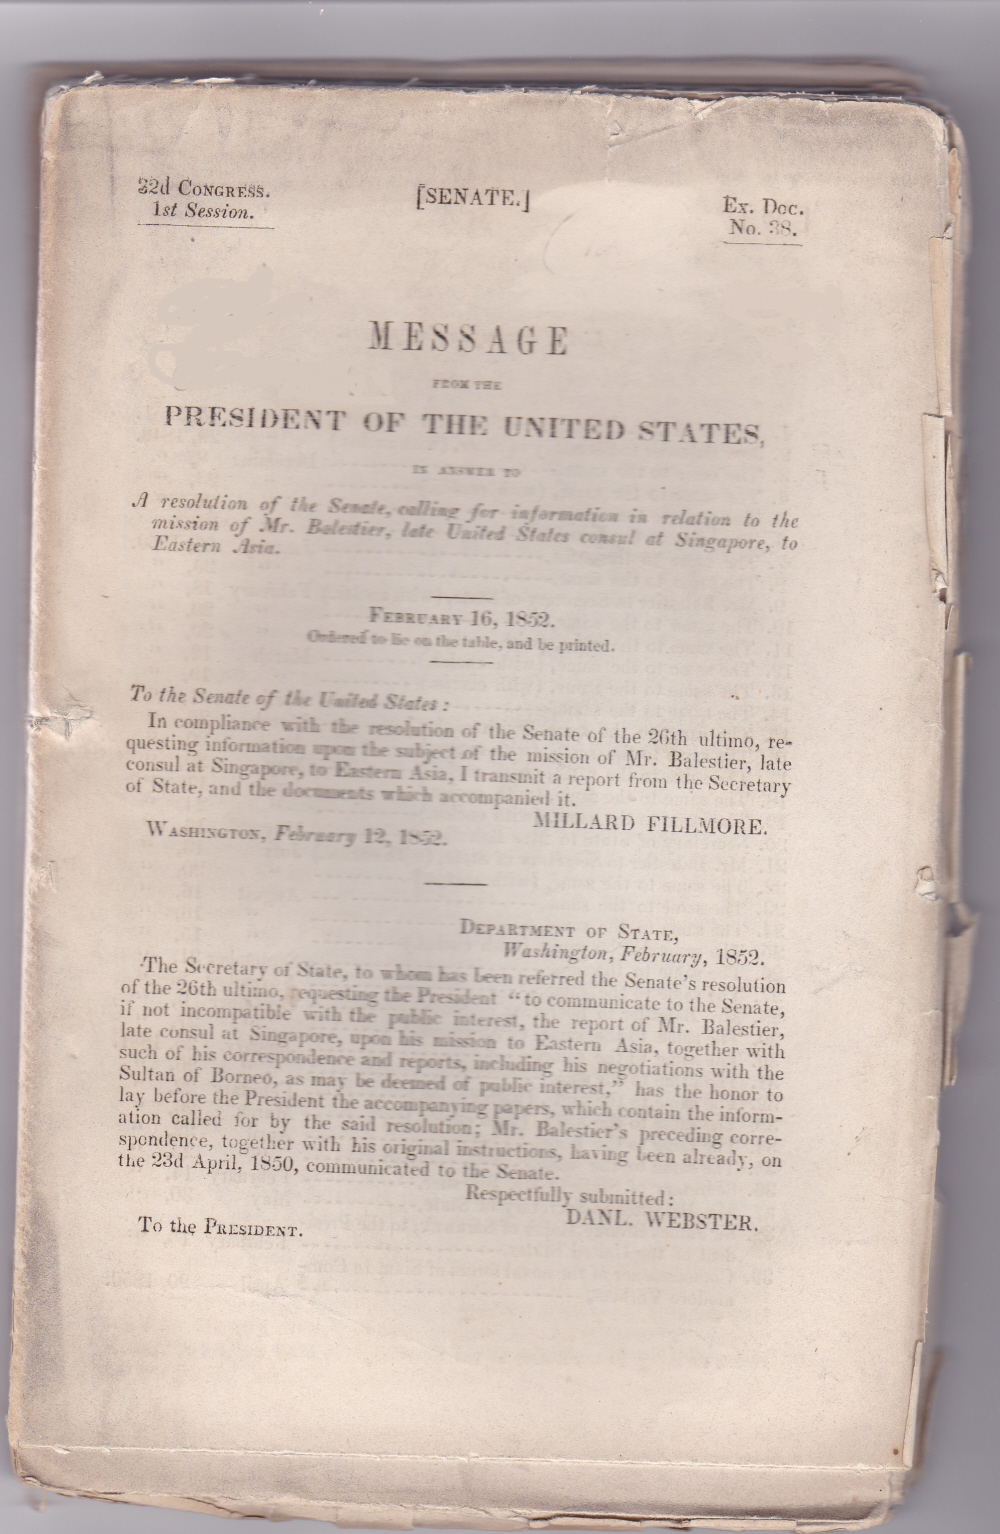 Image for [REPORT ON JOSEPH BALESTIER'S MISSION TO SIAM]: MESSAGE FROM THE PRESIDENT OF THE UNITED STATES, in answer to a resolution of the Senate, calling for information in relation to the mission of Mr. Balestier, late United States consul at Singapore, to Eastern Asia. (32d Congress. 1st Session. Ex. Doc. No. 38).